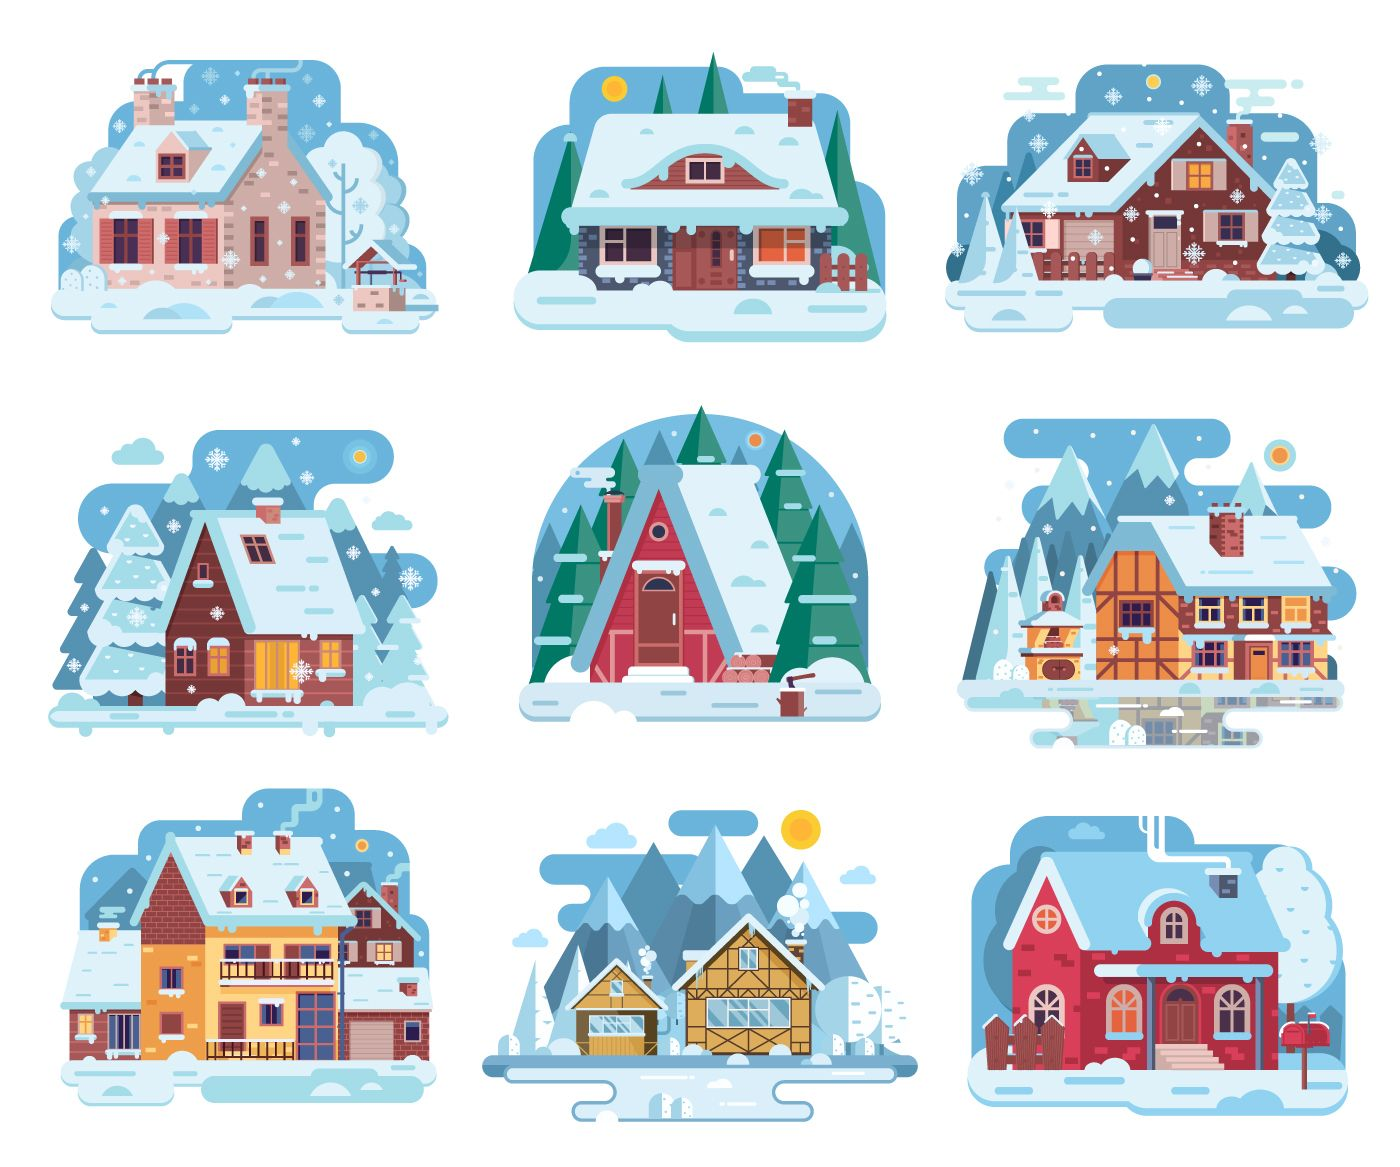 Cozy Winter Homes Illustrations on Behance in 2019.